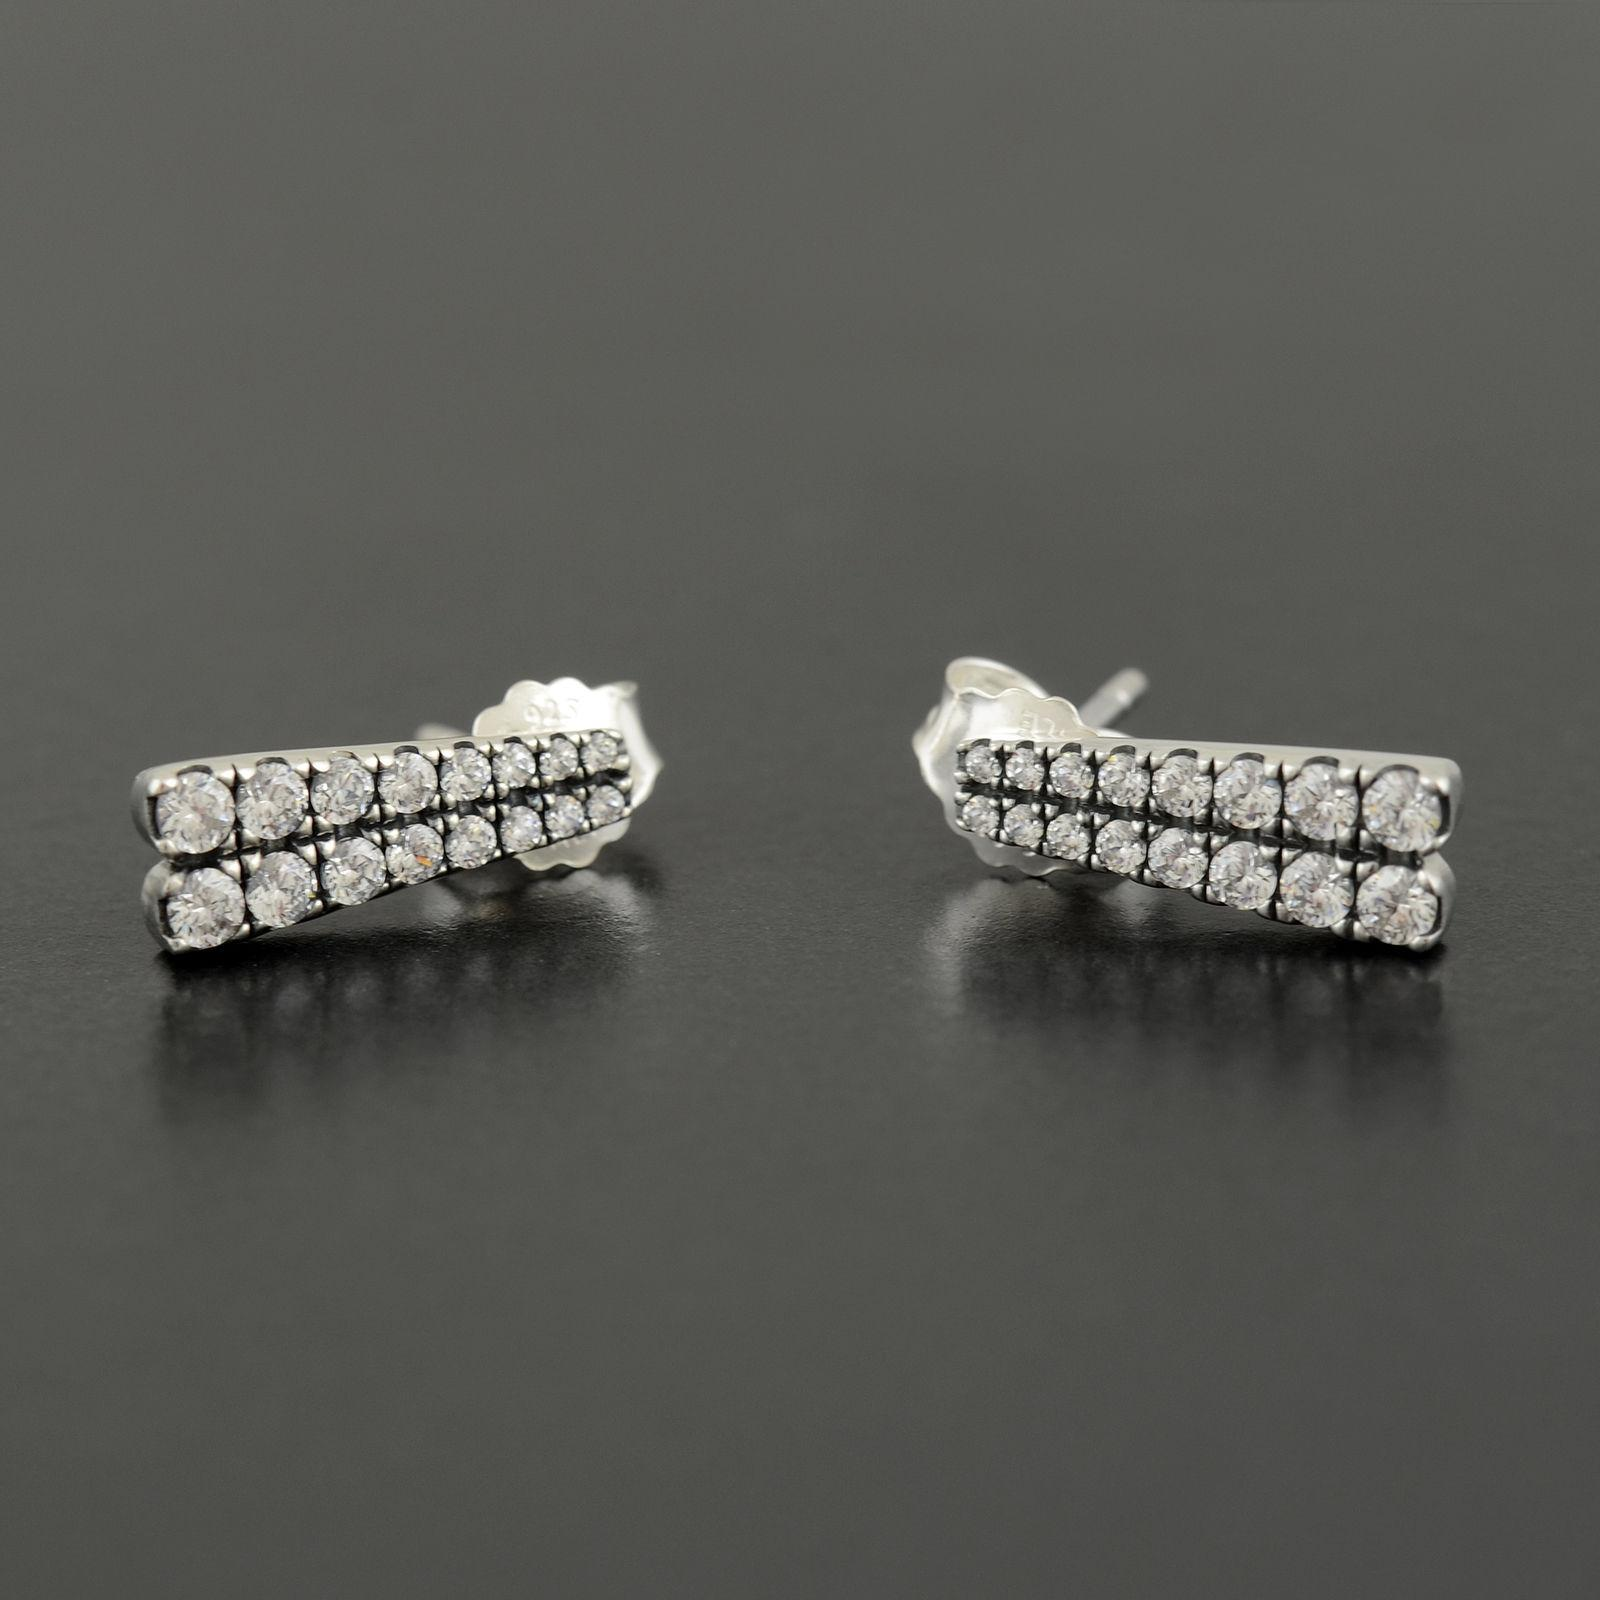 Czech Pandora Shooting Stars Stud Earrings Clear Cz 296367cz 83bfb E428f